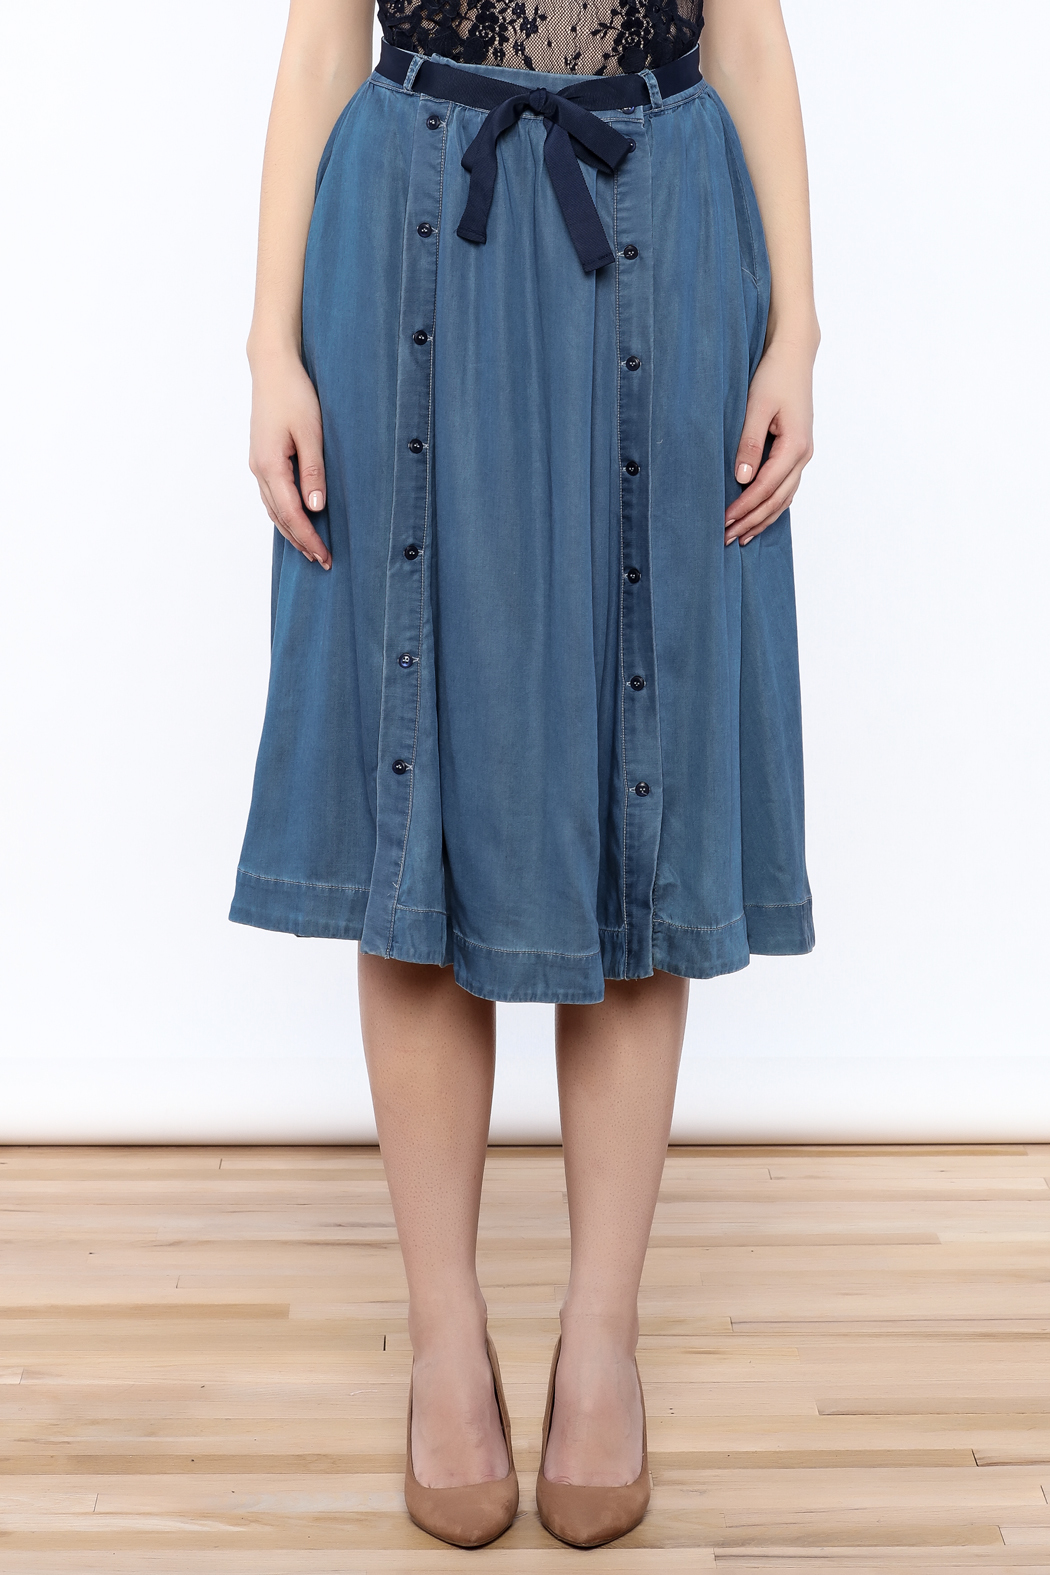 FRNCH Denim Flare Skirt from New York City by Jupe — Shoptiques